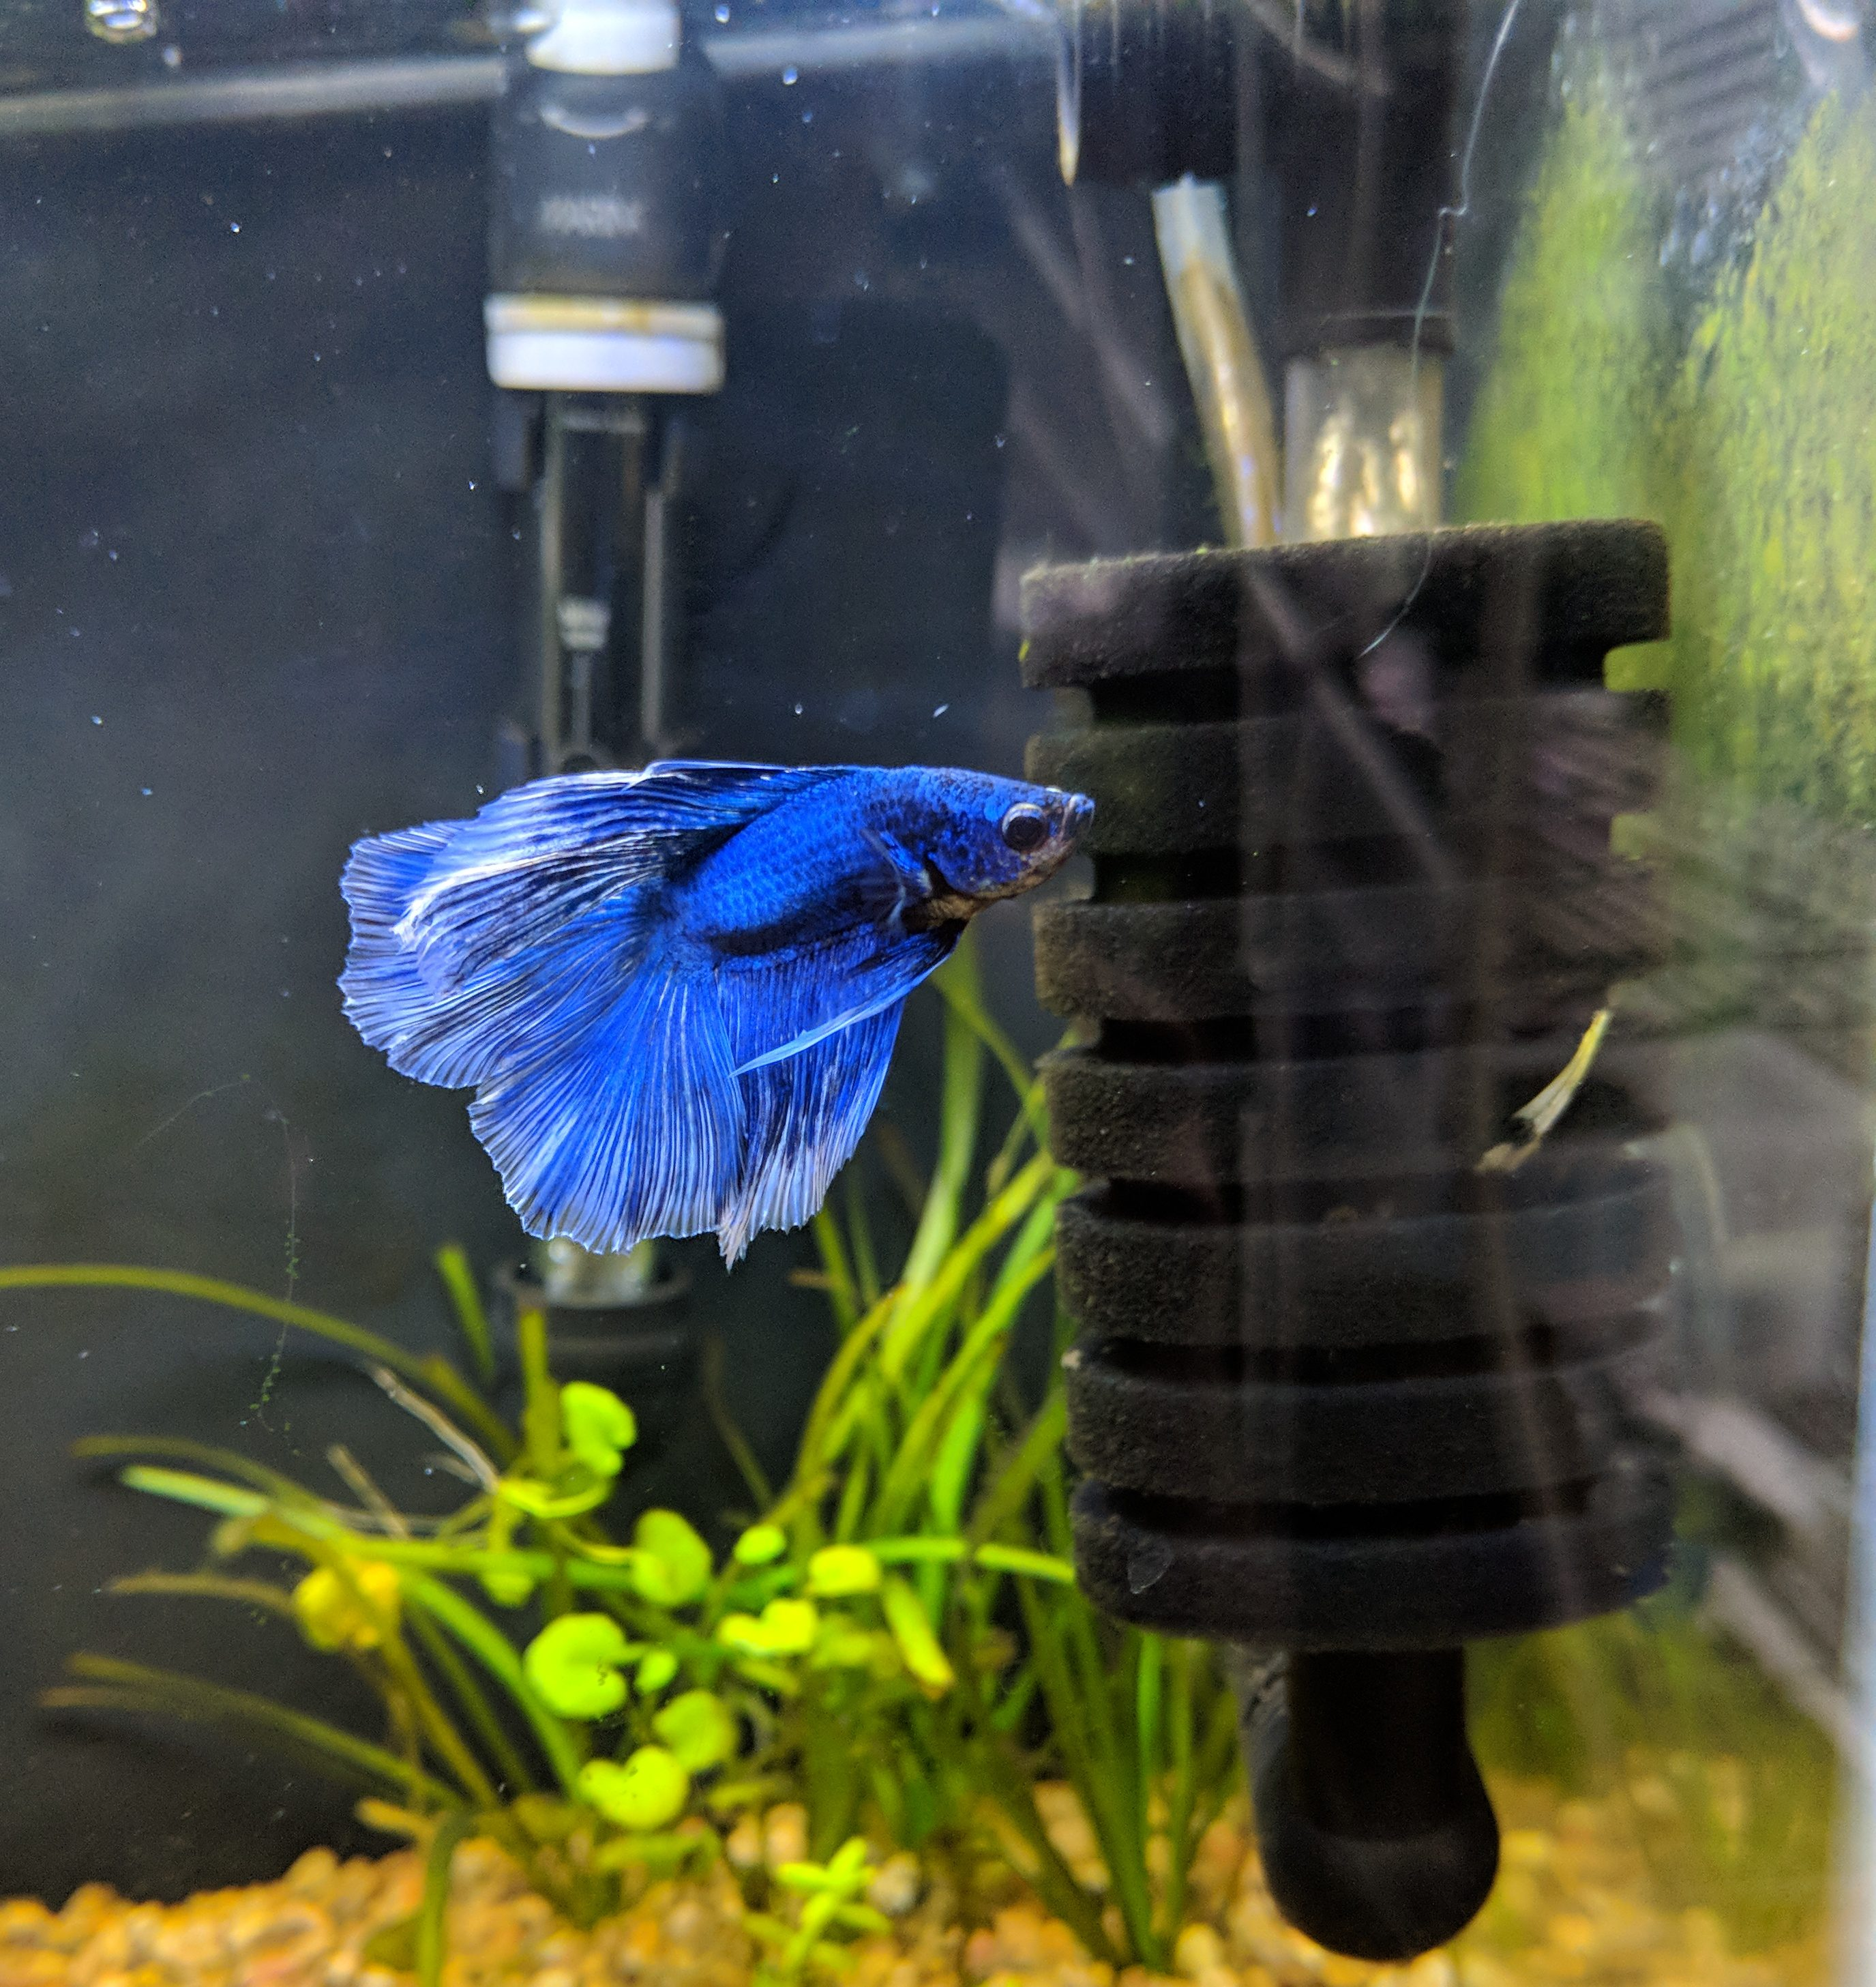 Betta posing with a heater and a sponge filter